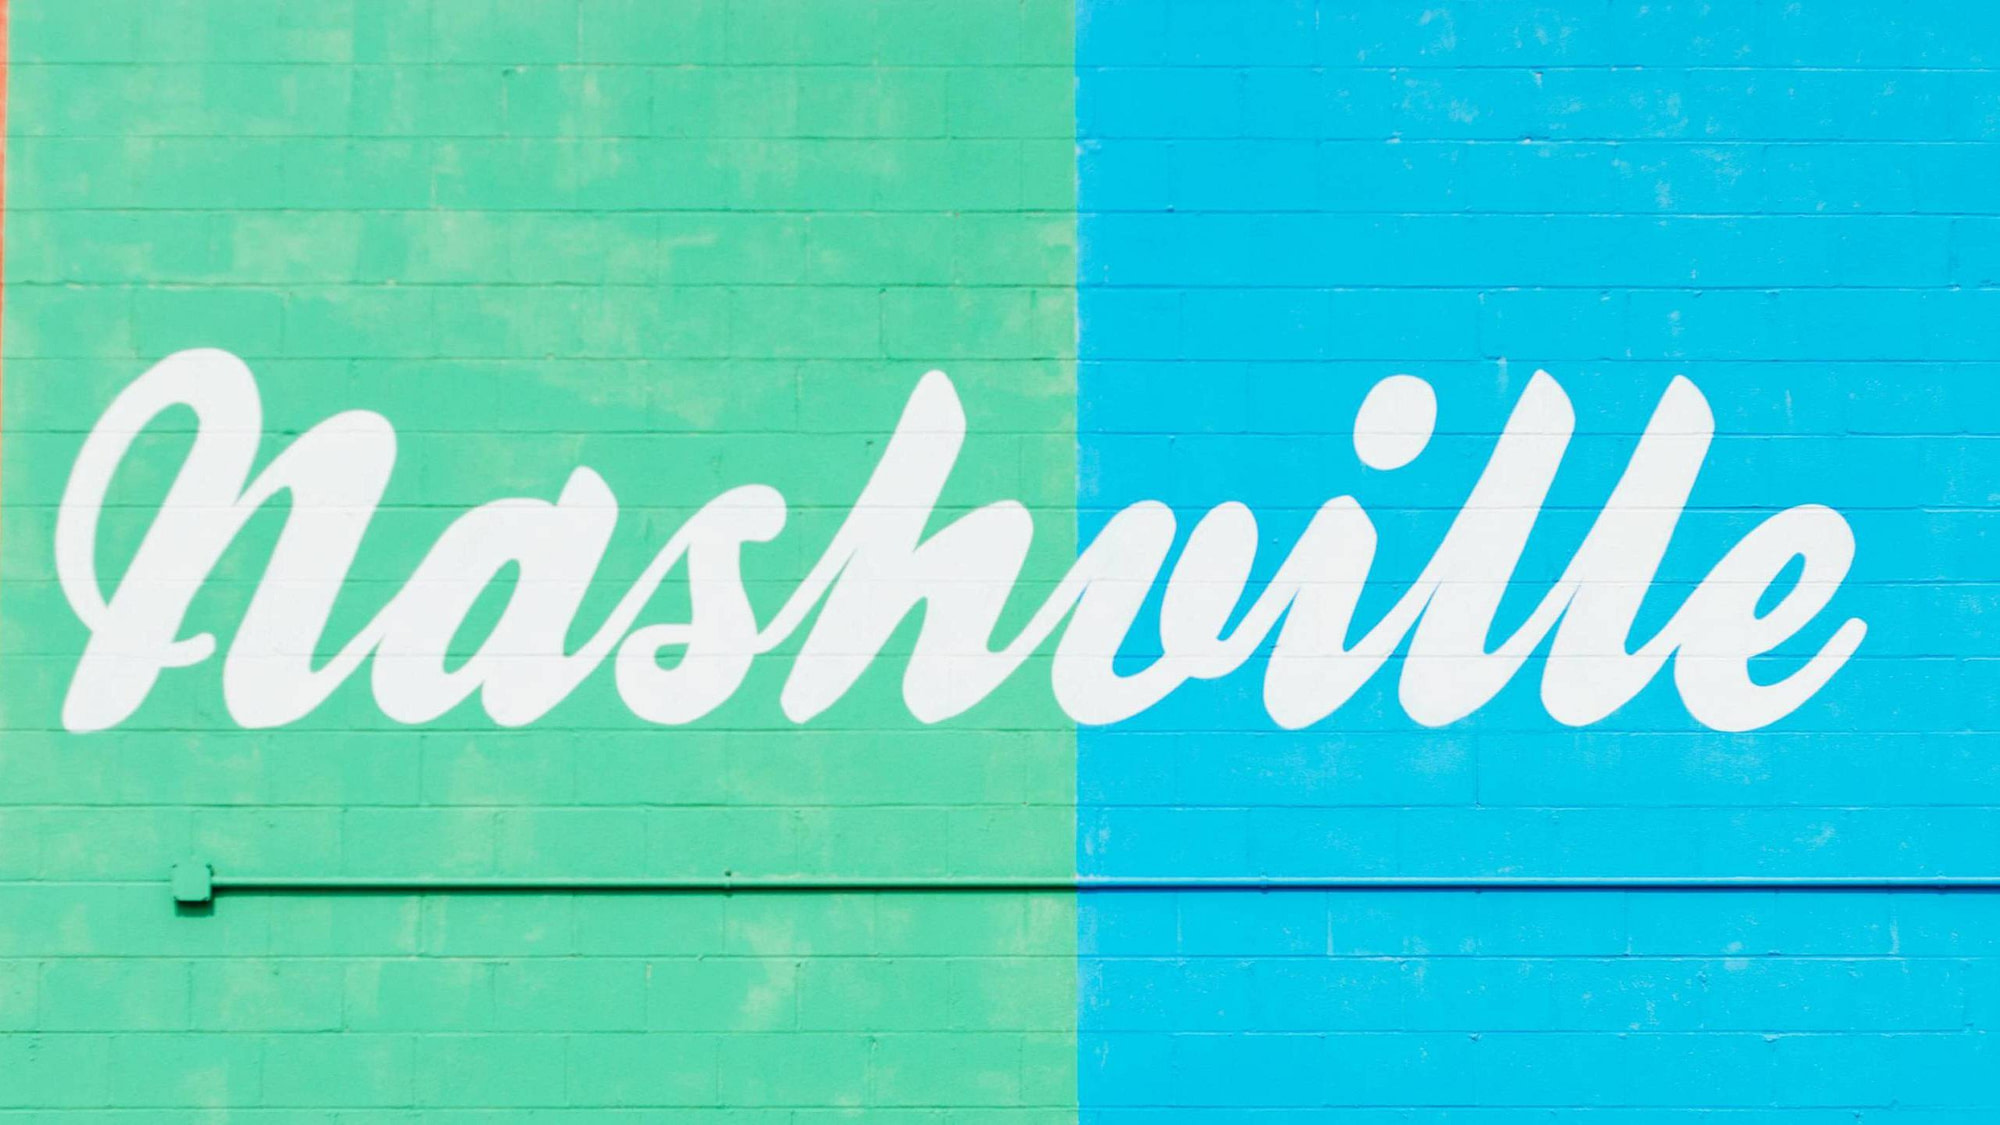 A mural in Nashville with a beautiful colorful background